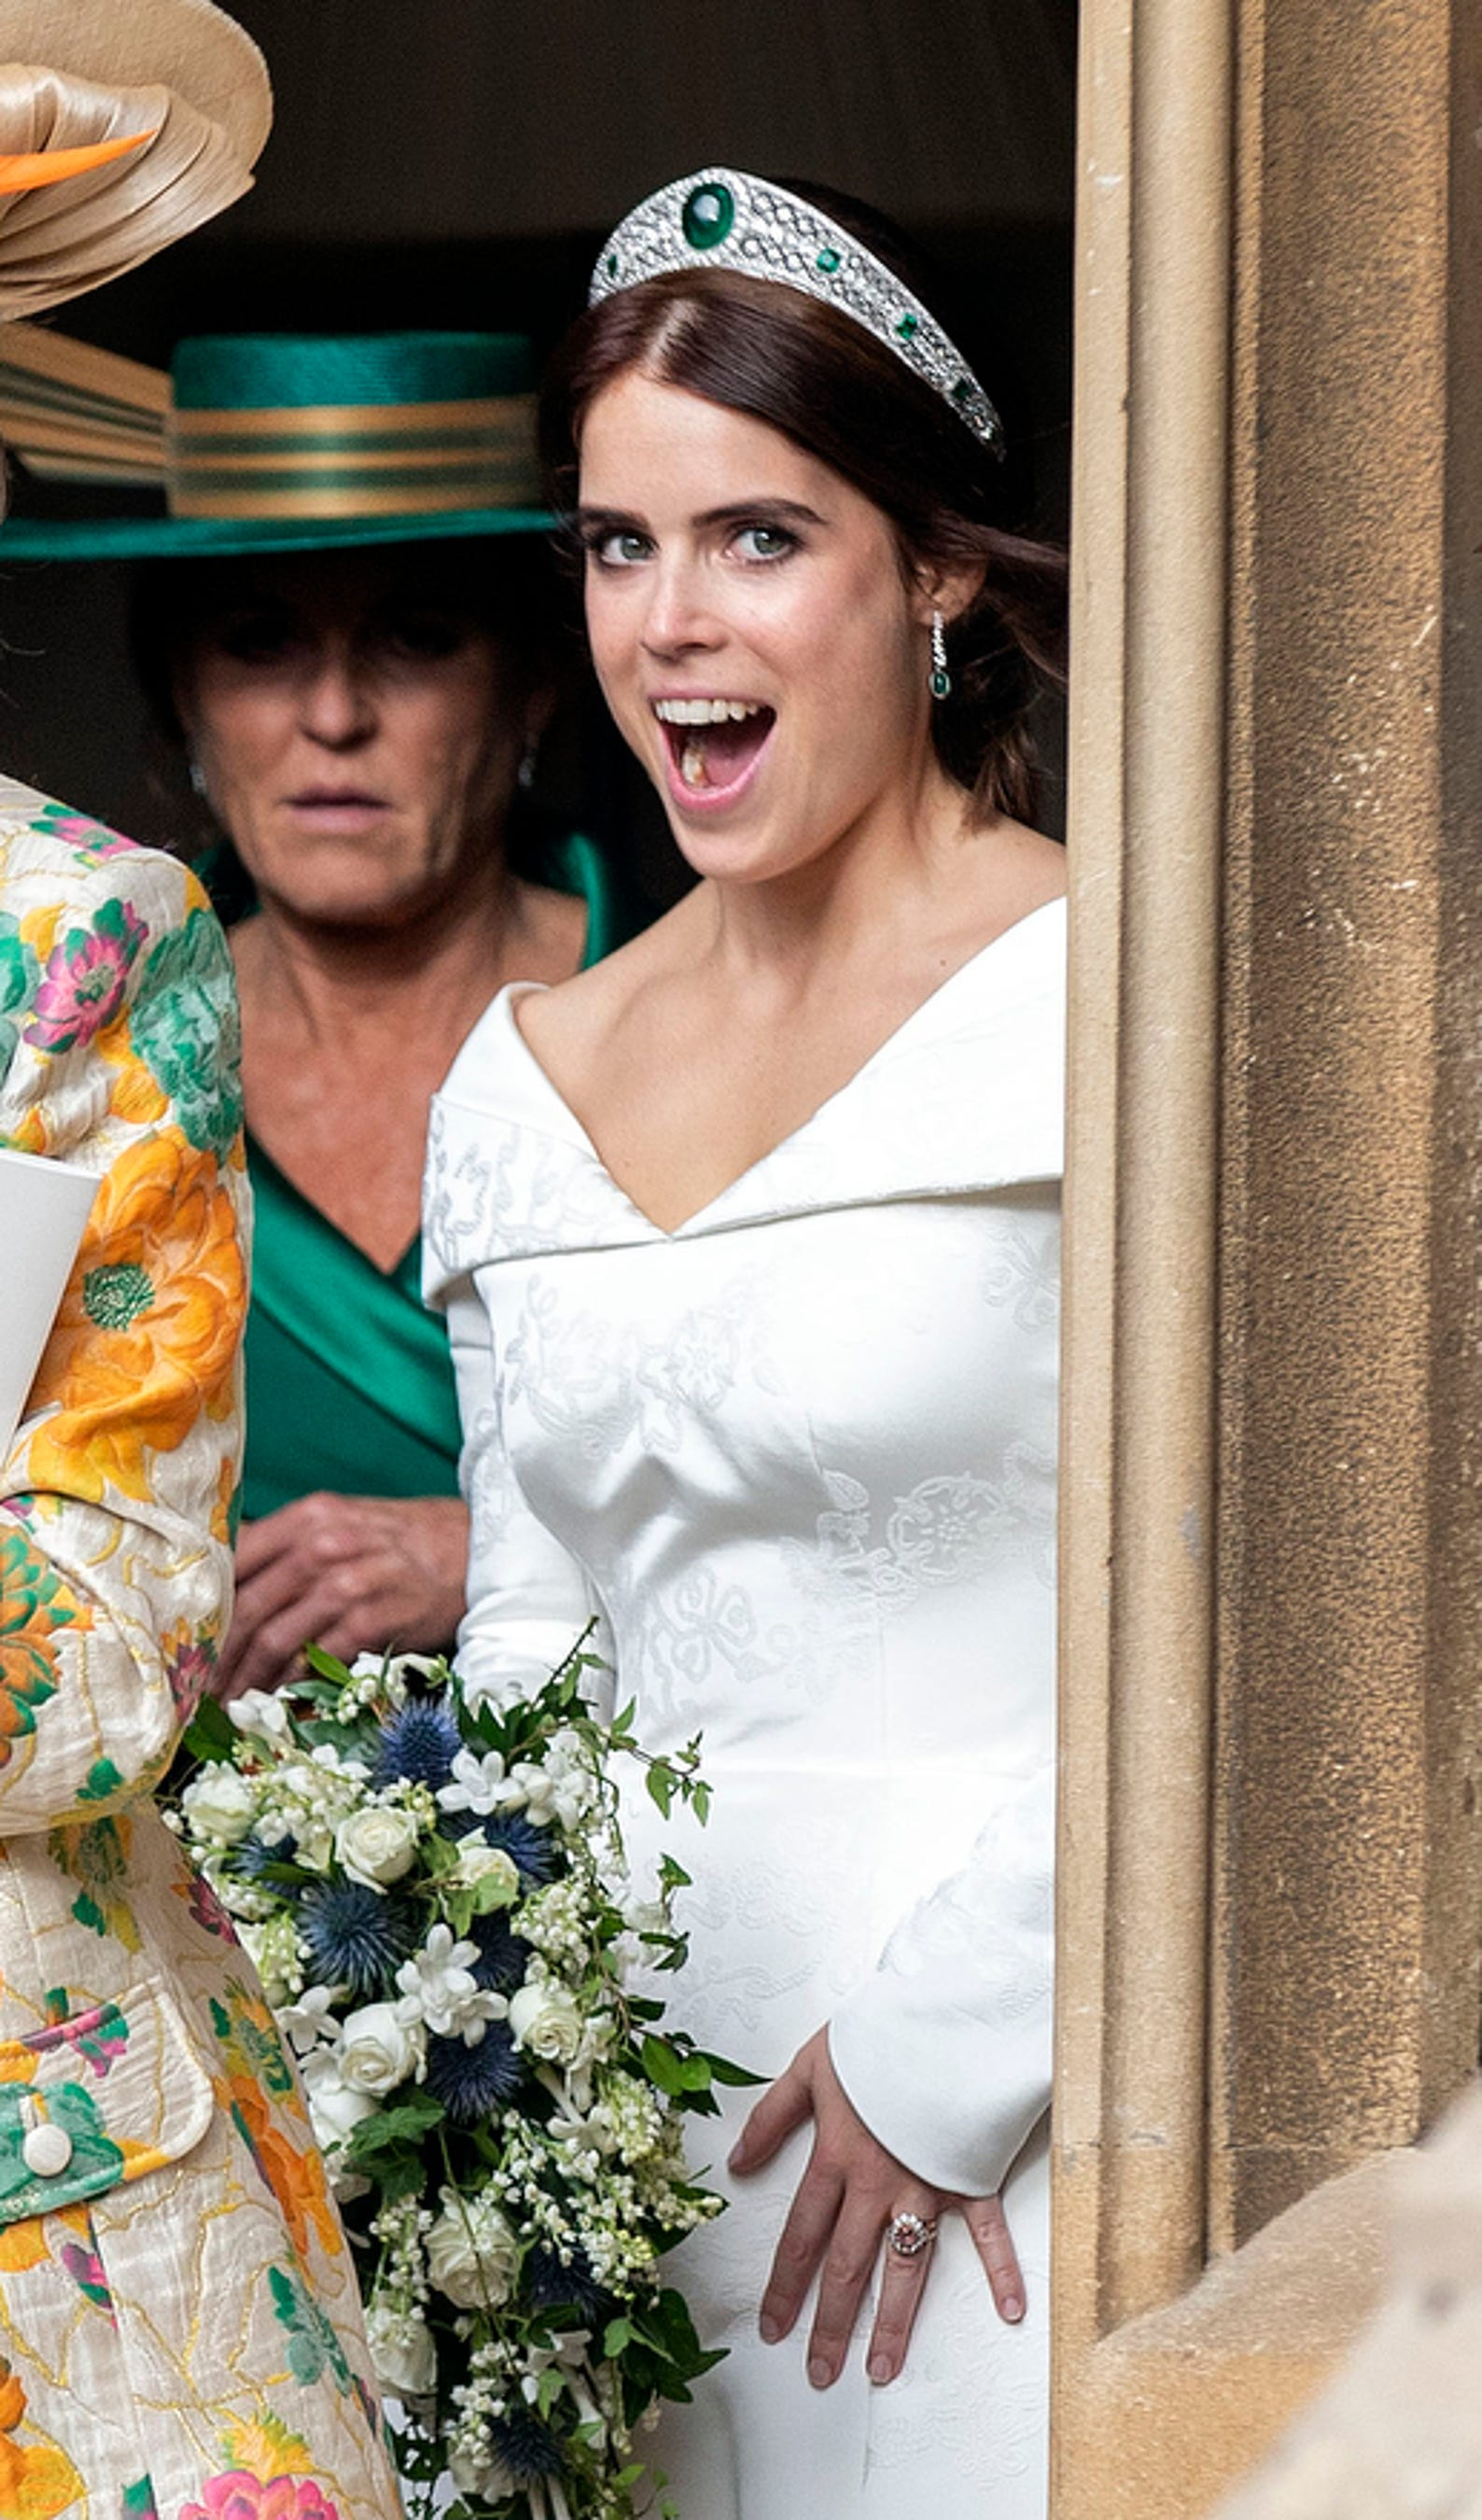 Princess Eugenie Wedding.Scenes From Princess Eugenie S Royal Wedding To Jack Brooksbank